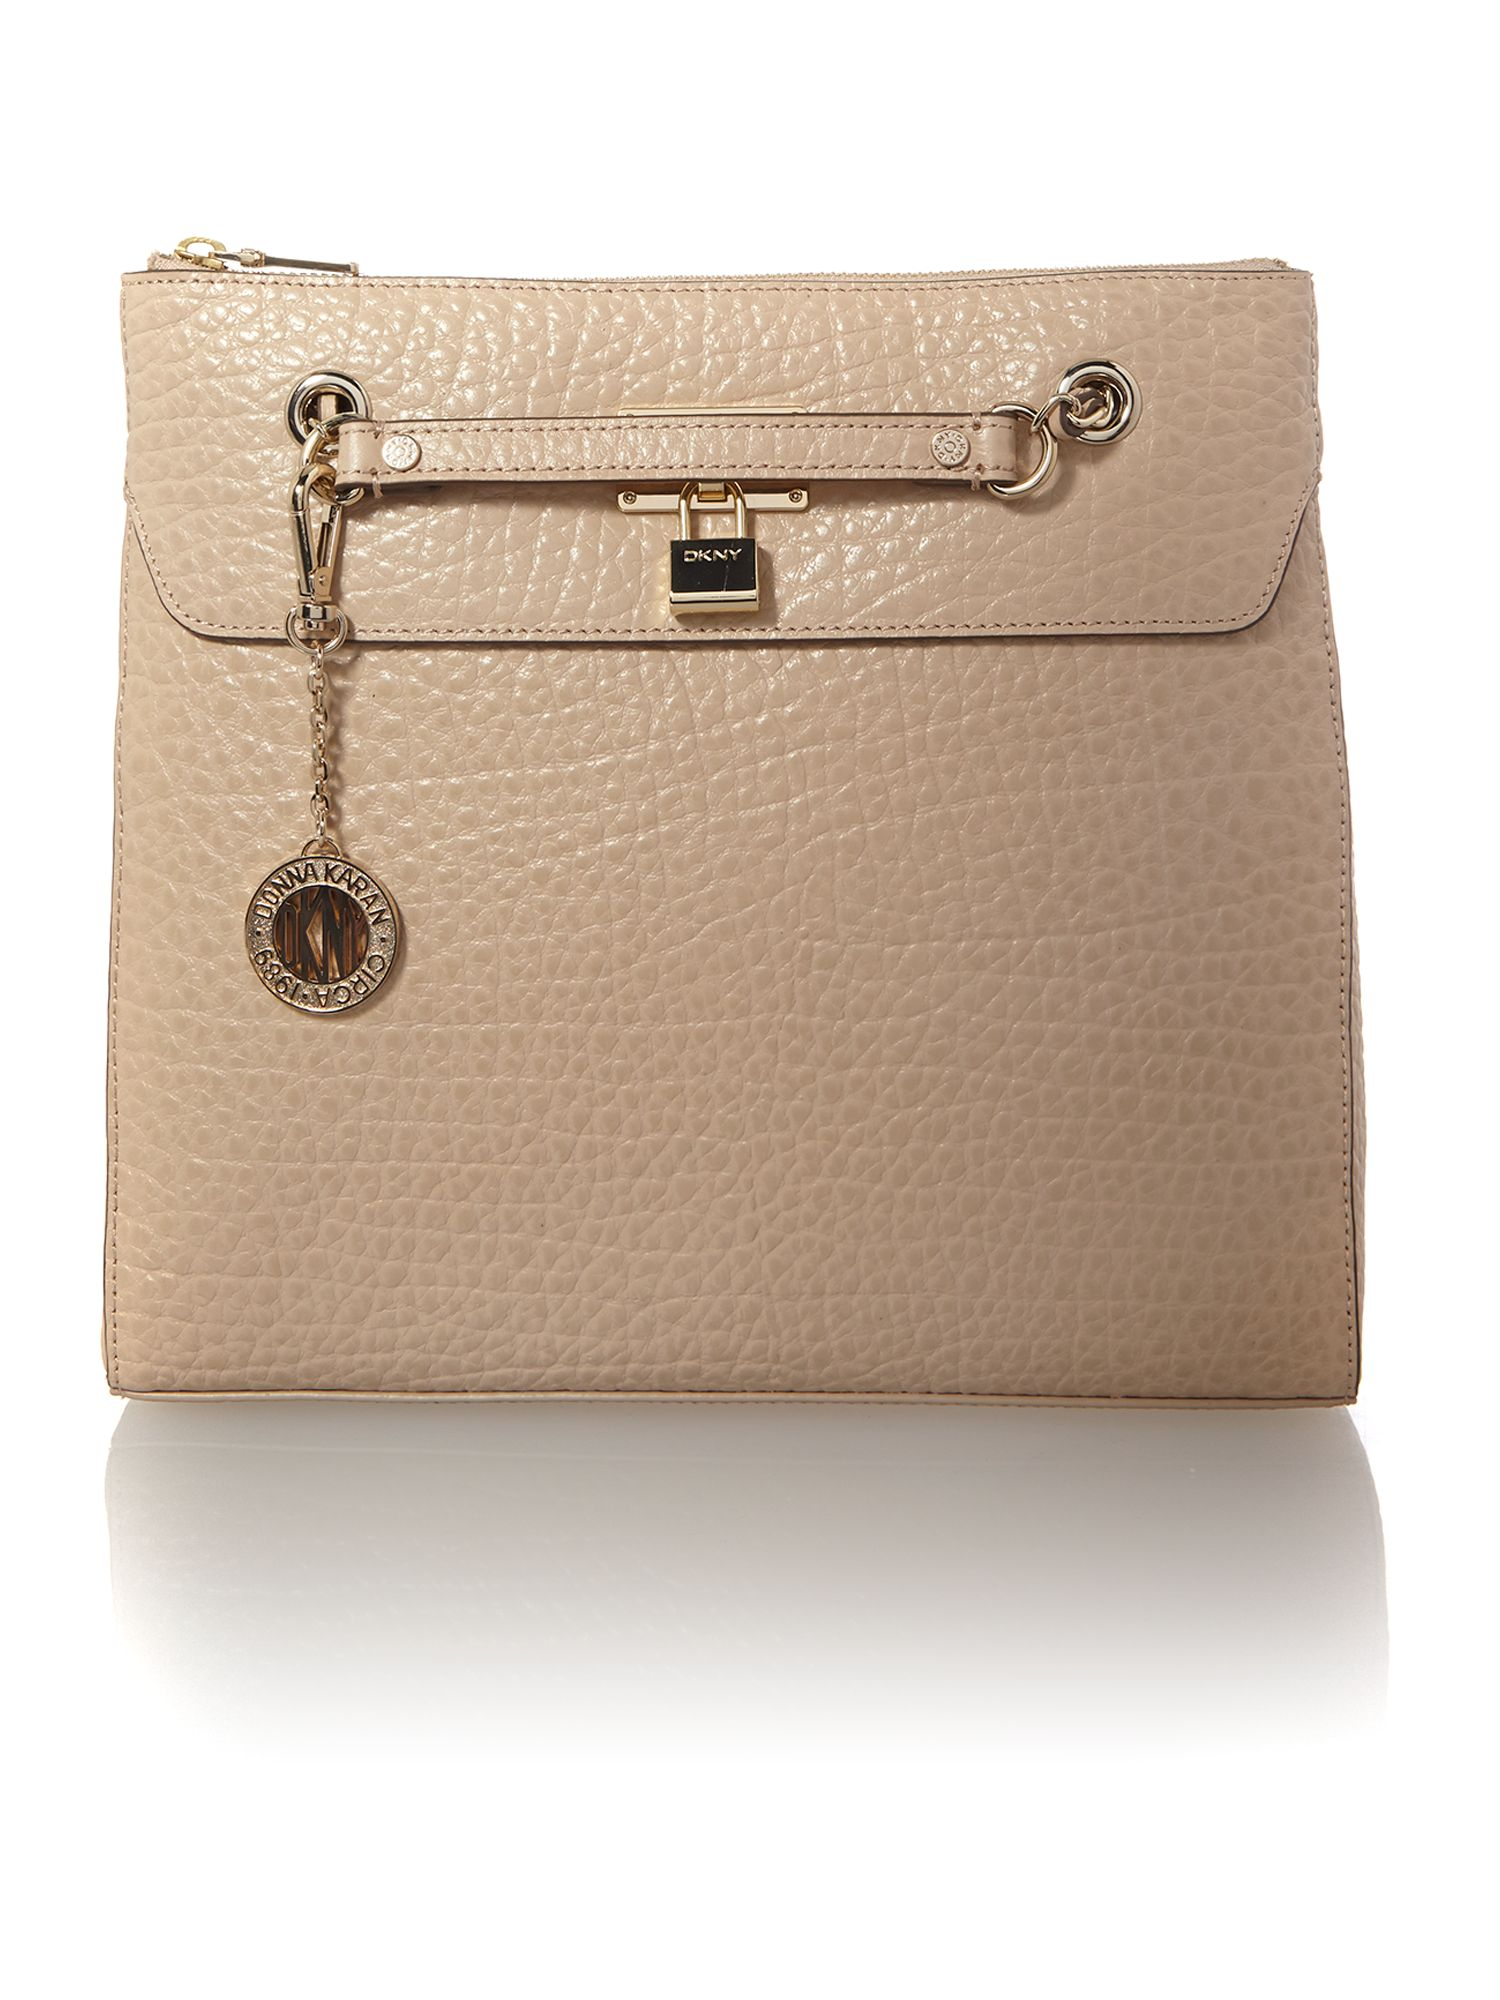 French grain neutral shoulder bag